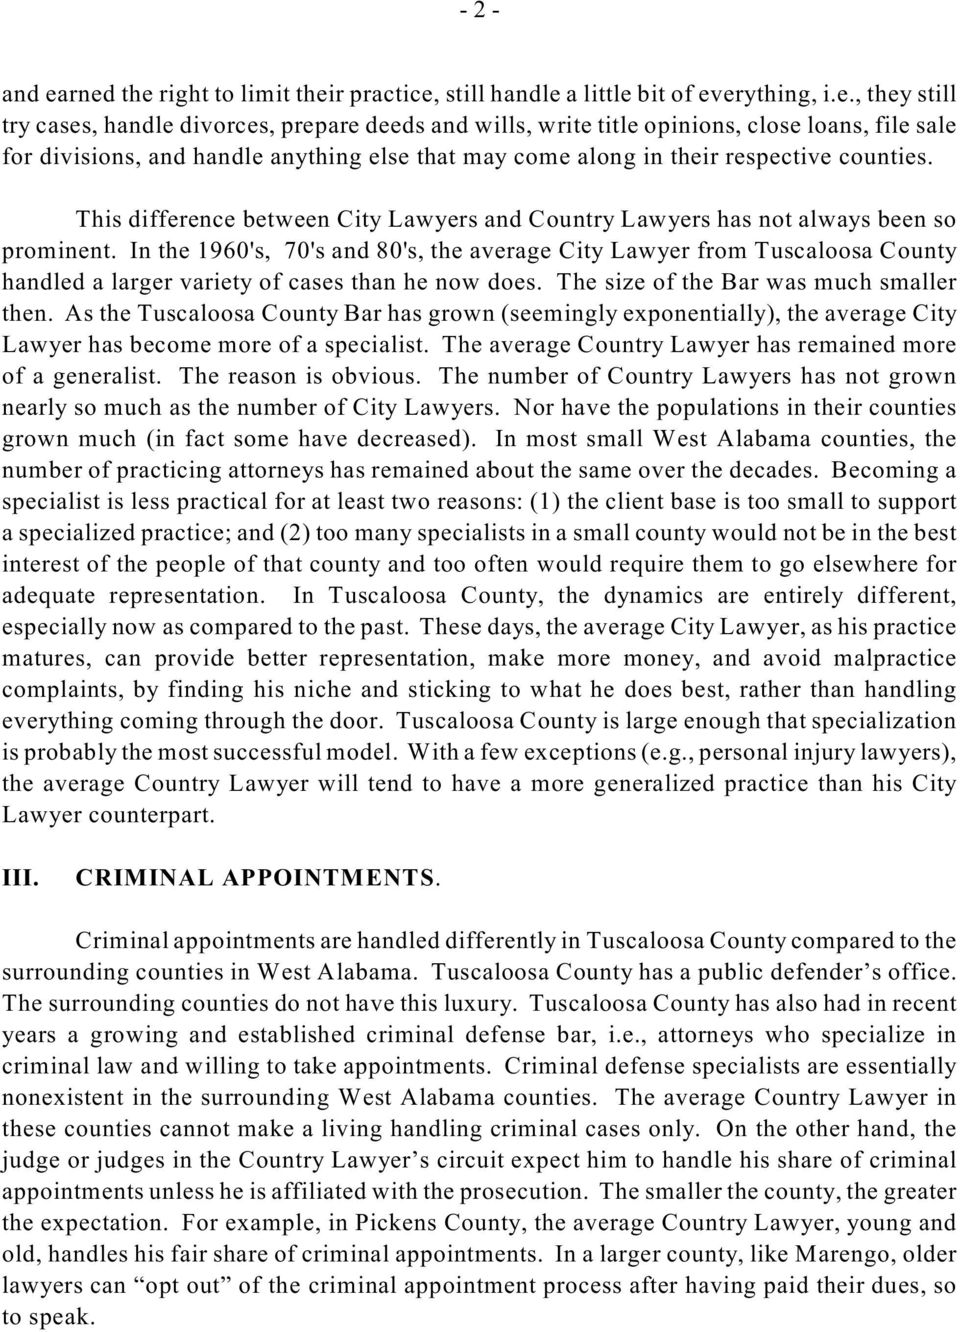 divisions, and handle anything else that may come along in their respective counties. This difference between City Lawyers and Country Lawyers has not always been so prominent.